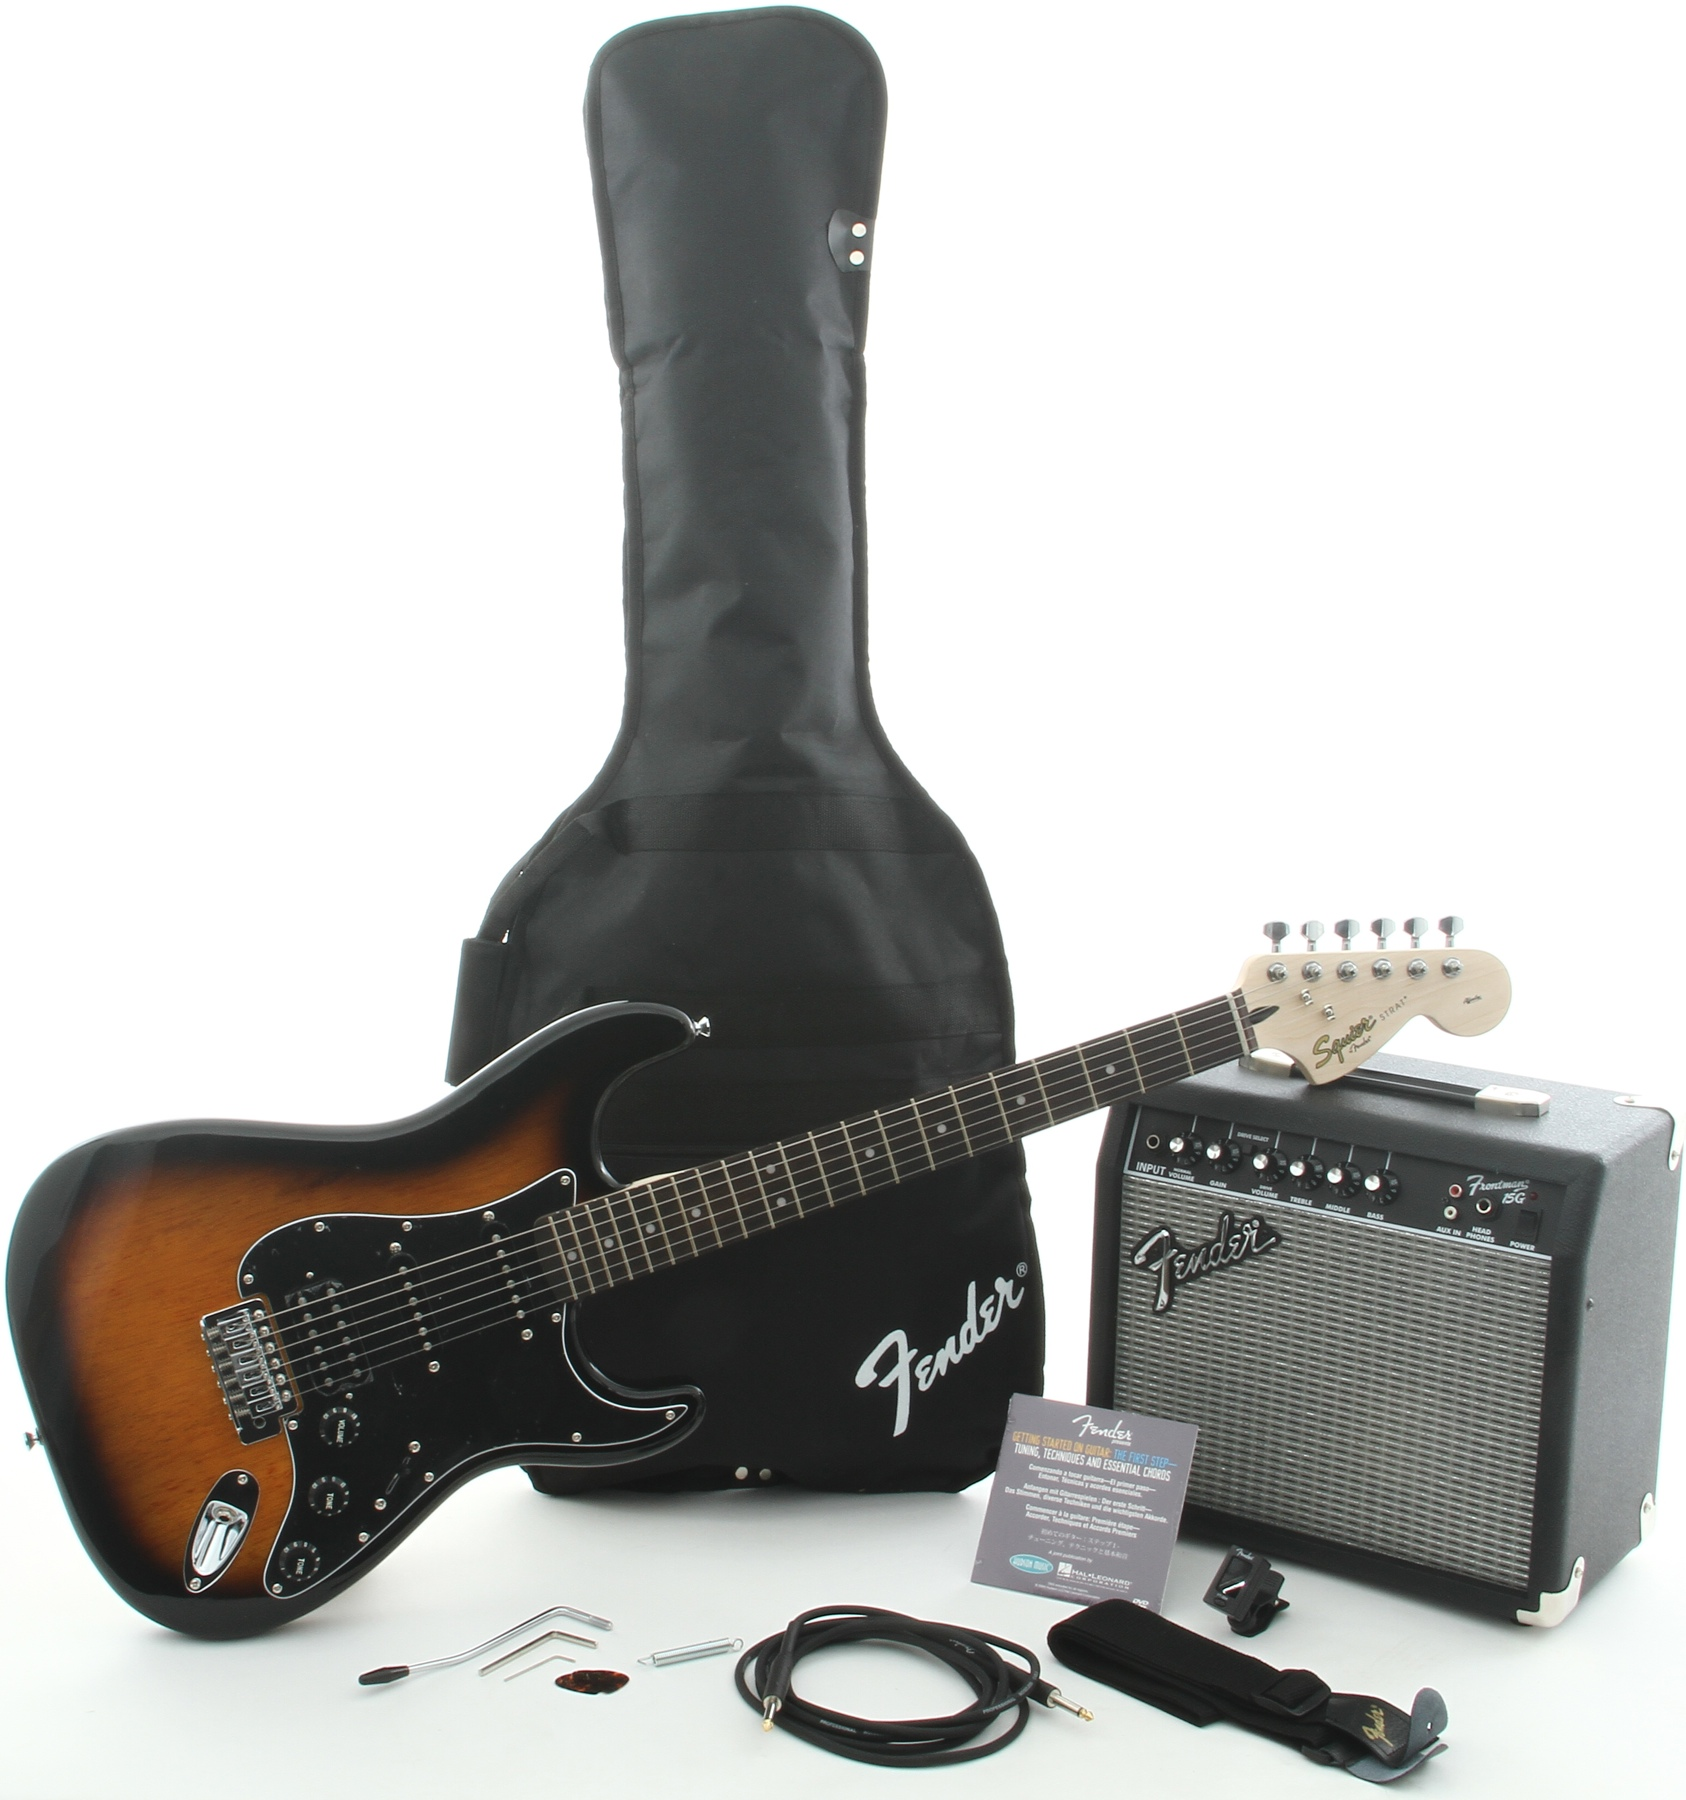 Squier Affinity Strat Wiring Diagram: SQUIER AFFINITY STRAT PACK HSS WITH FRONTMAN 15G AMPLIFIER